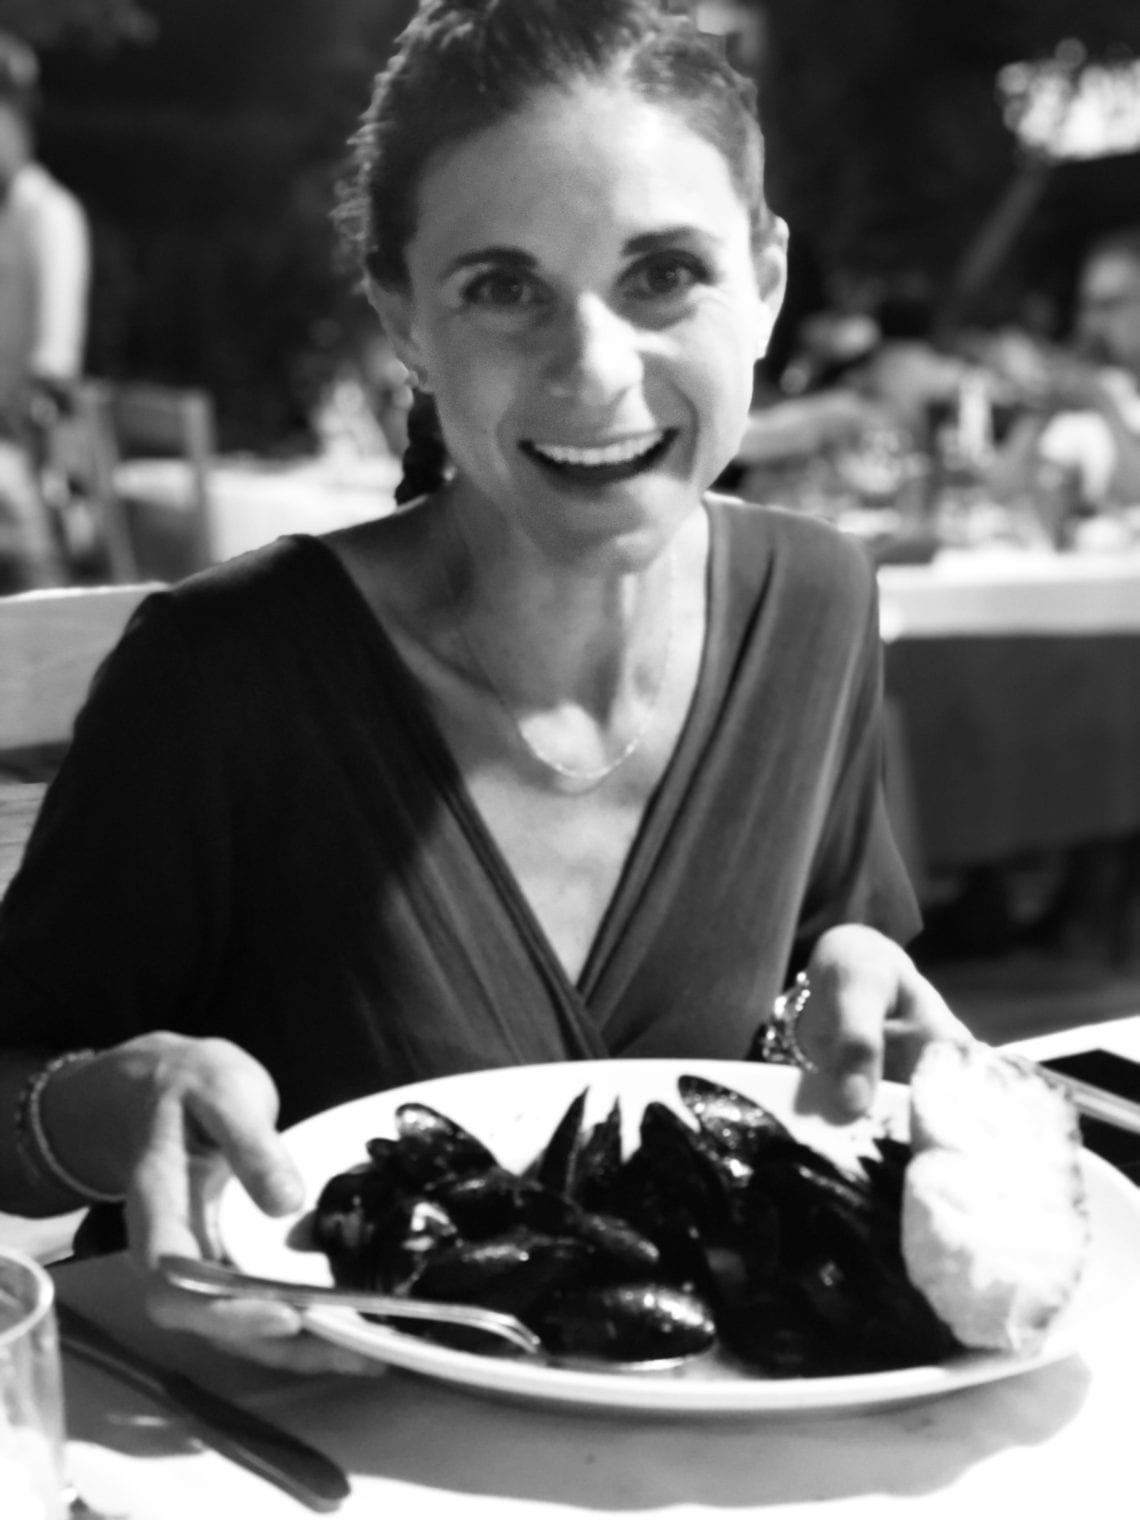 cozze, mussels, best Italian, Italian stories, food and people